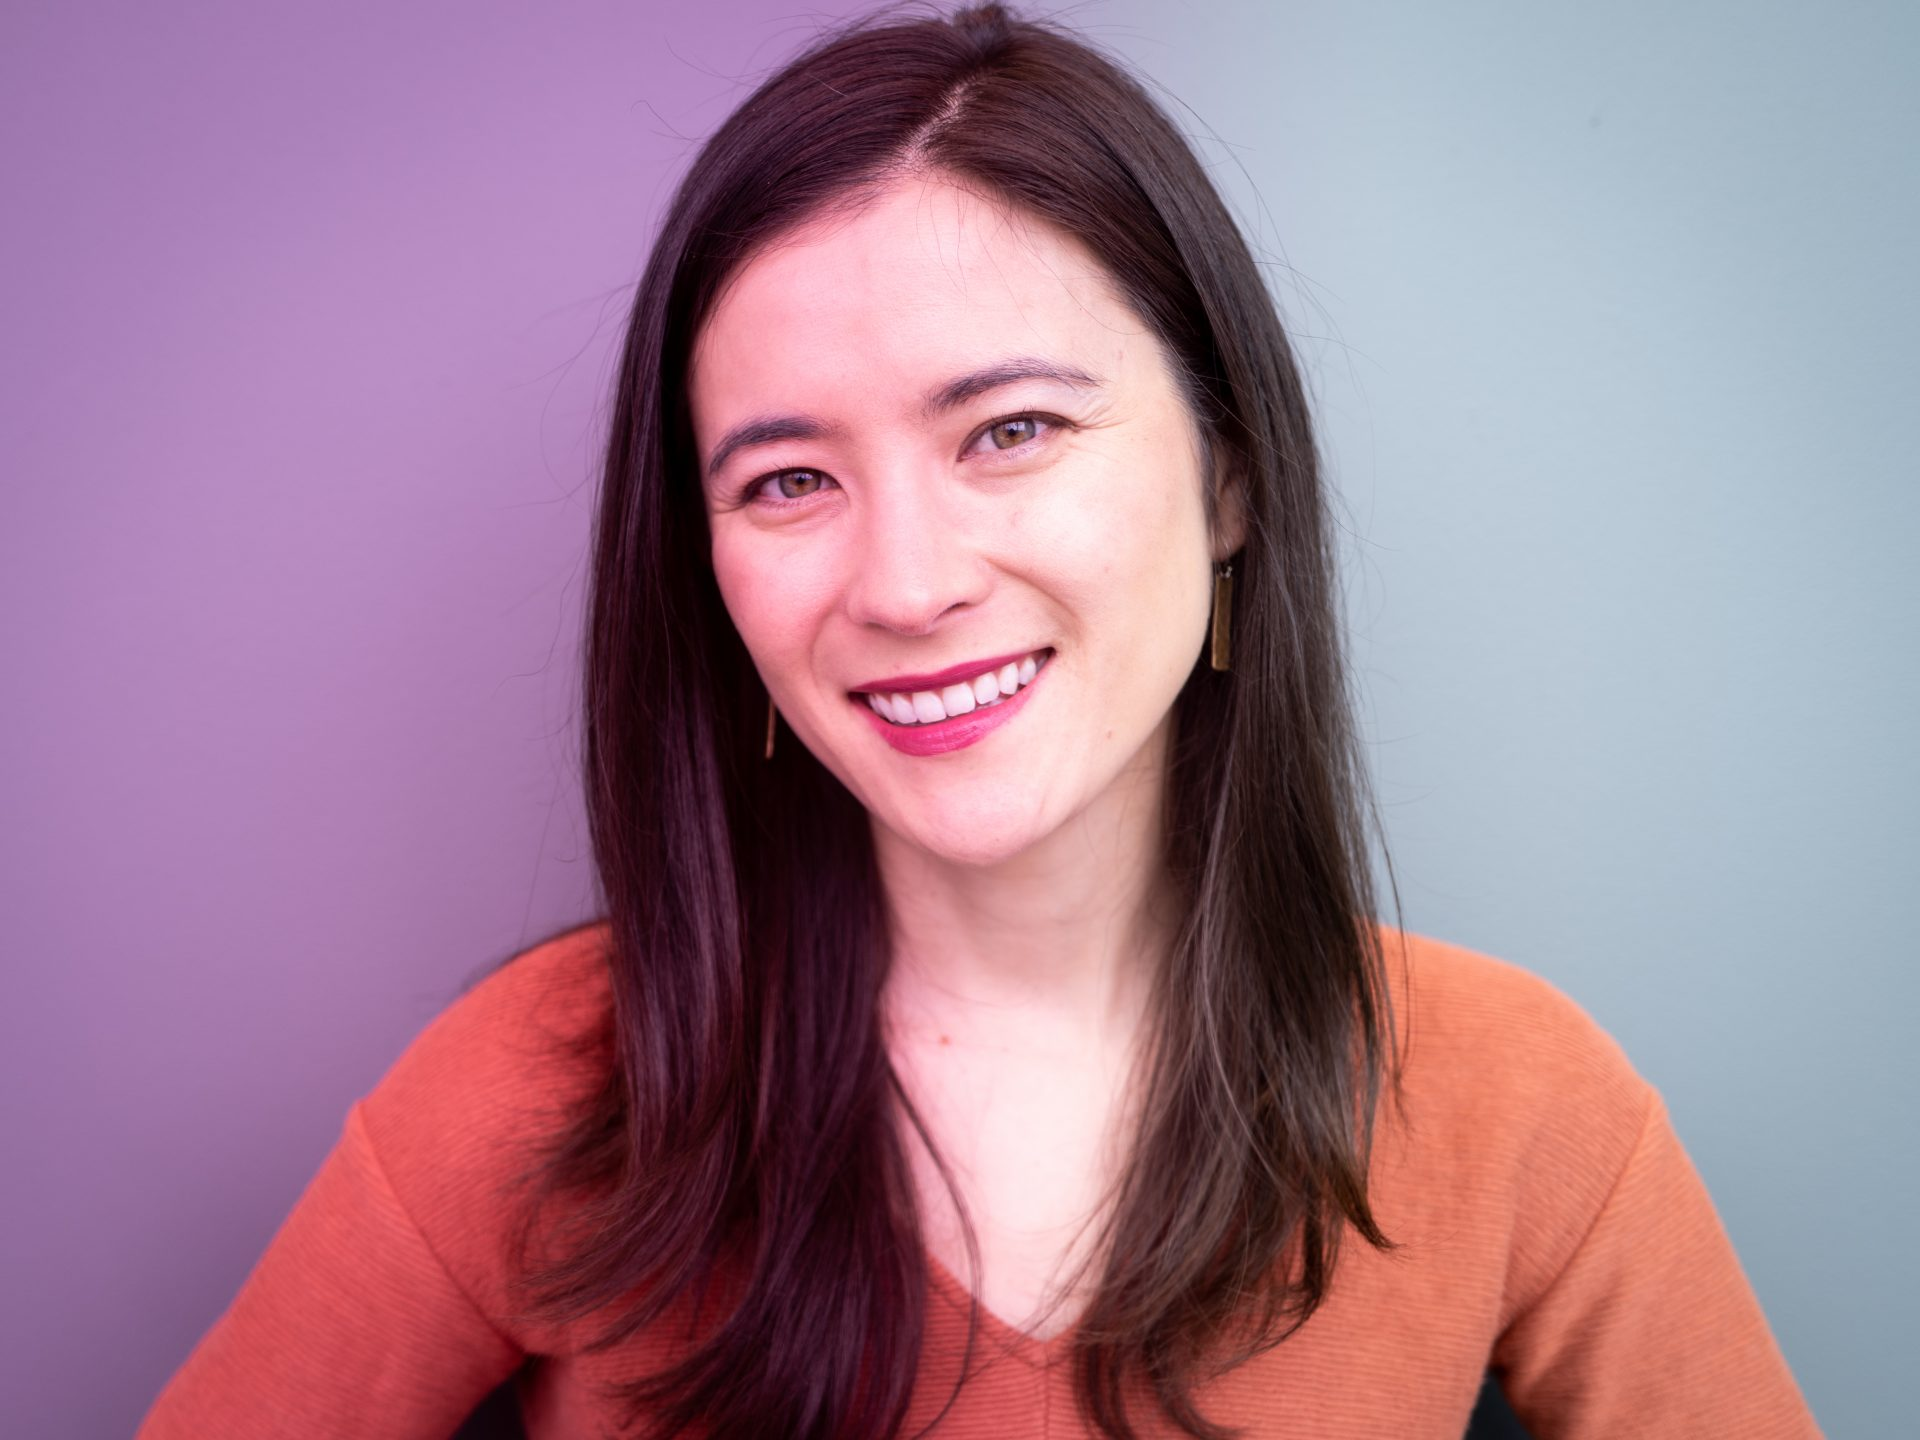 Lauren Migaki appears on Smart Talk on February 26, 2020.